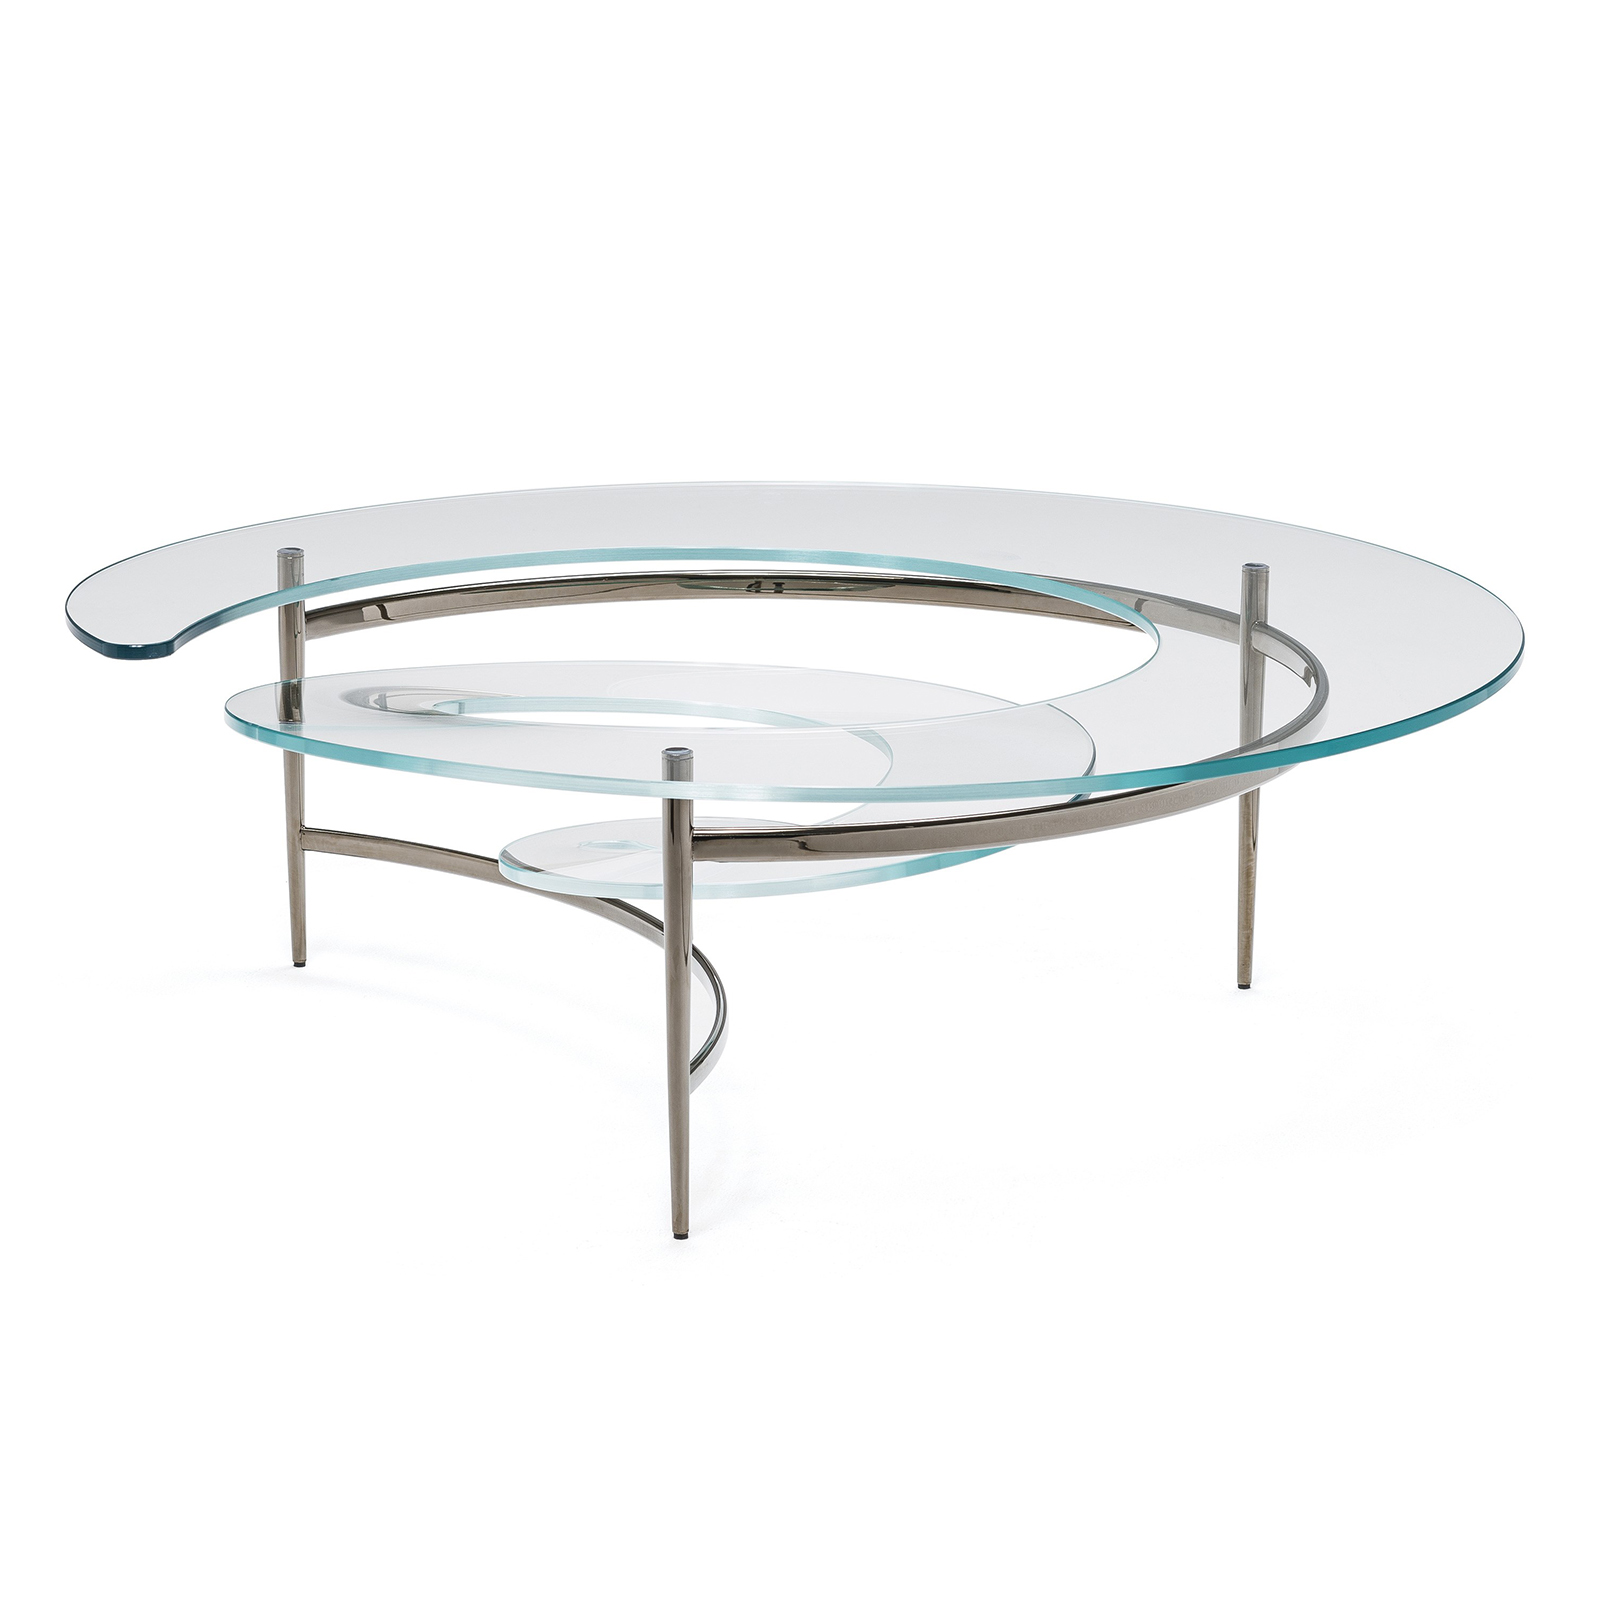 table basse design en verre spirale mobilier de luxe idkrea collection. Black Bedroom Furniture Sets. Home Design Ideas